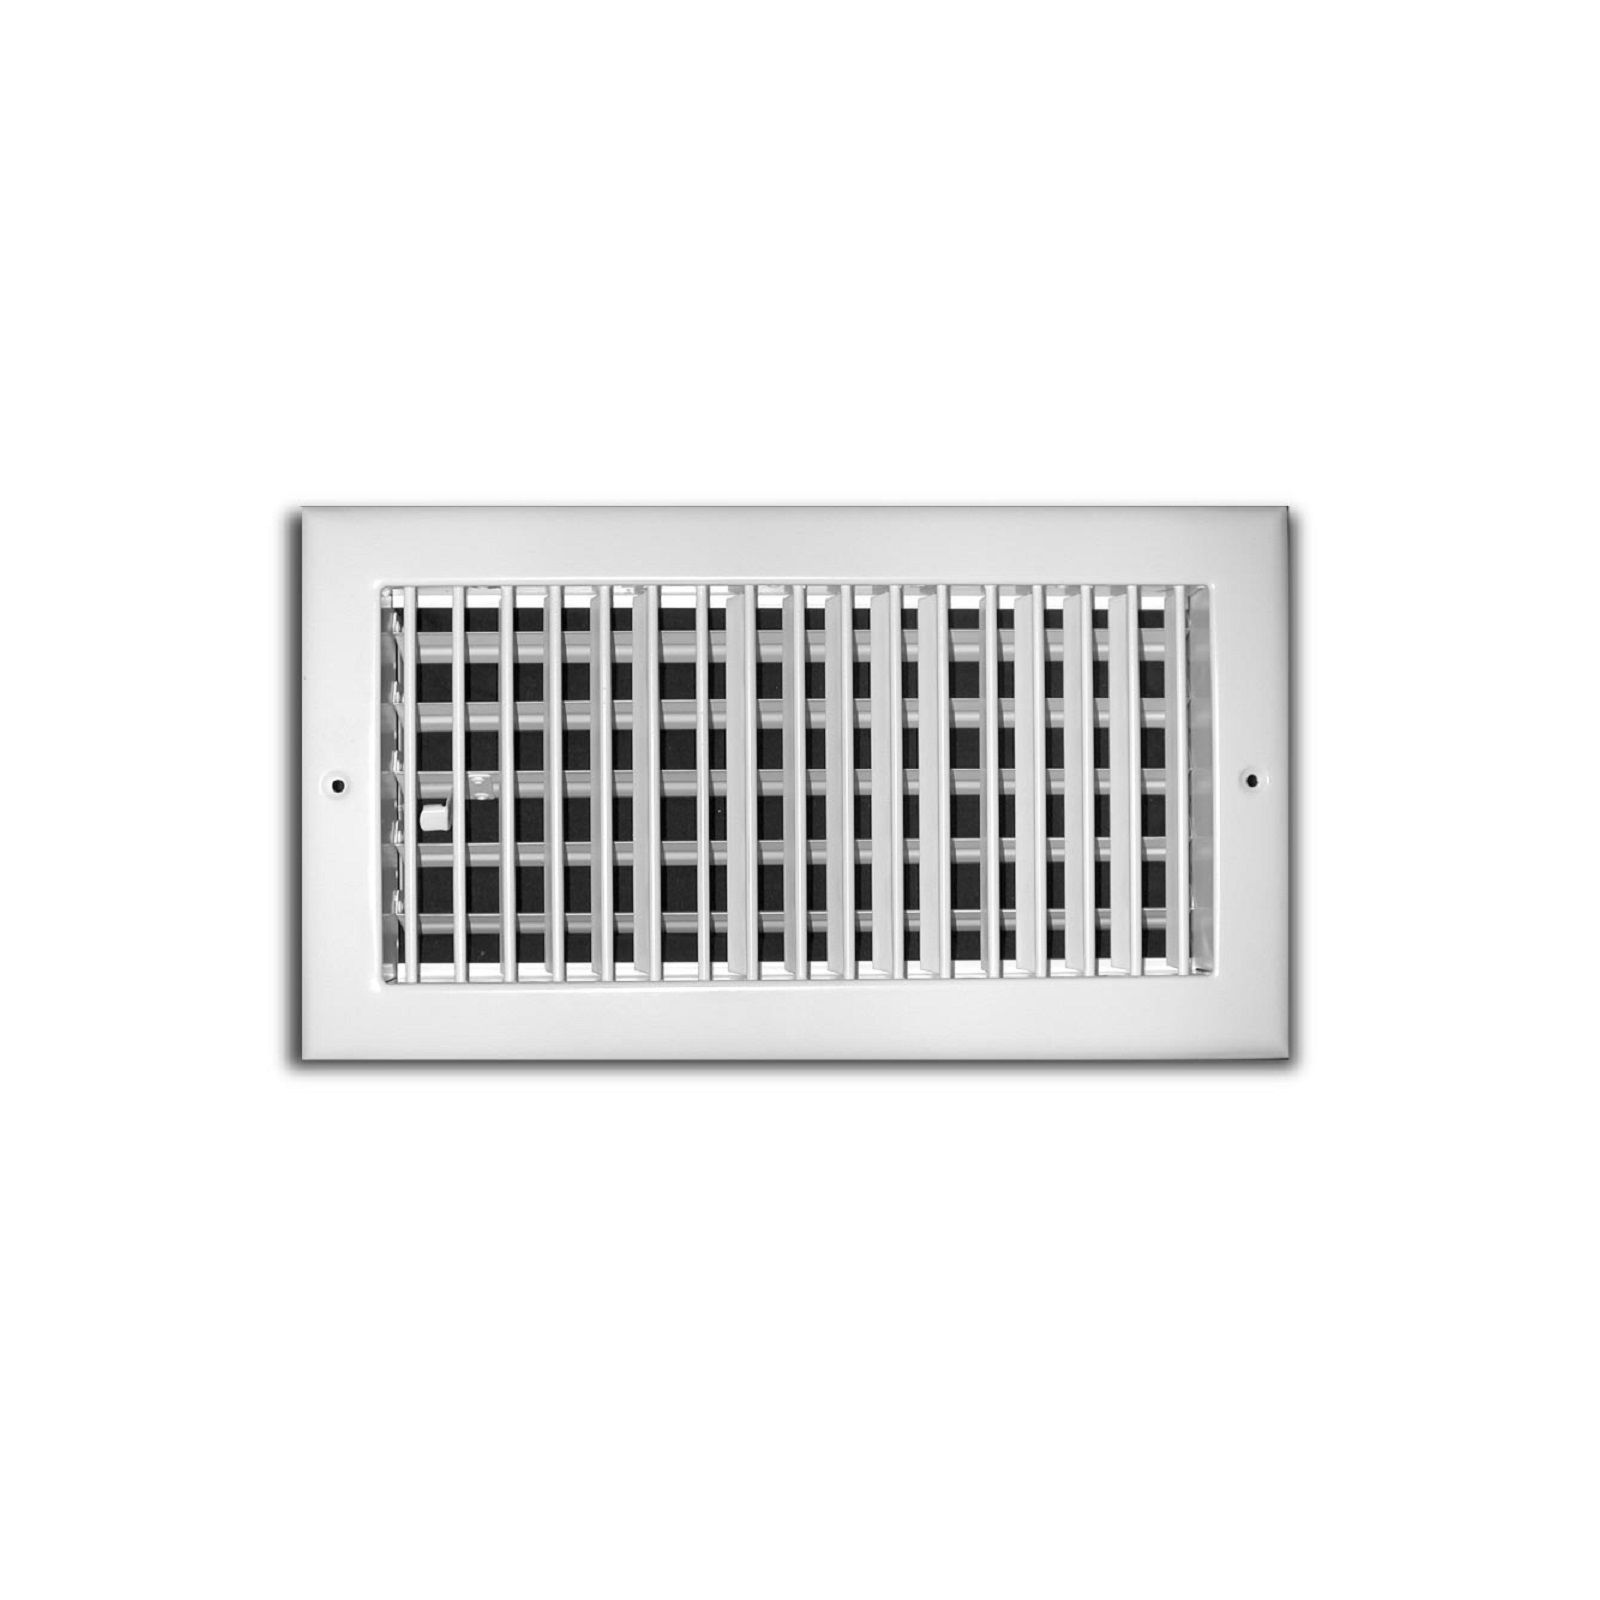 "TRUaire 210VM 24X06 - Steel Adjustable 1-Way Wall/Ceiling Register With Multi Shutter Damper, White, 24"" X 06"""